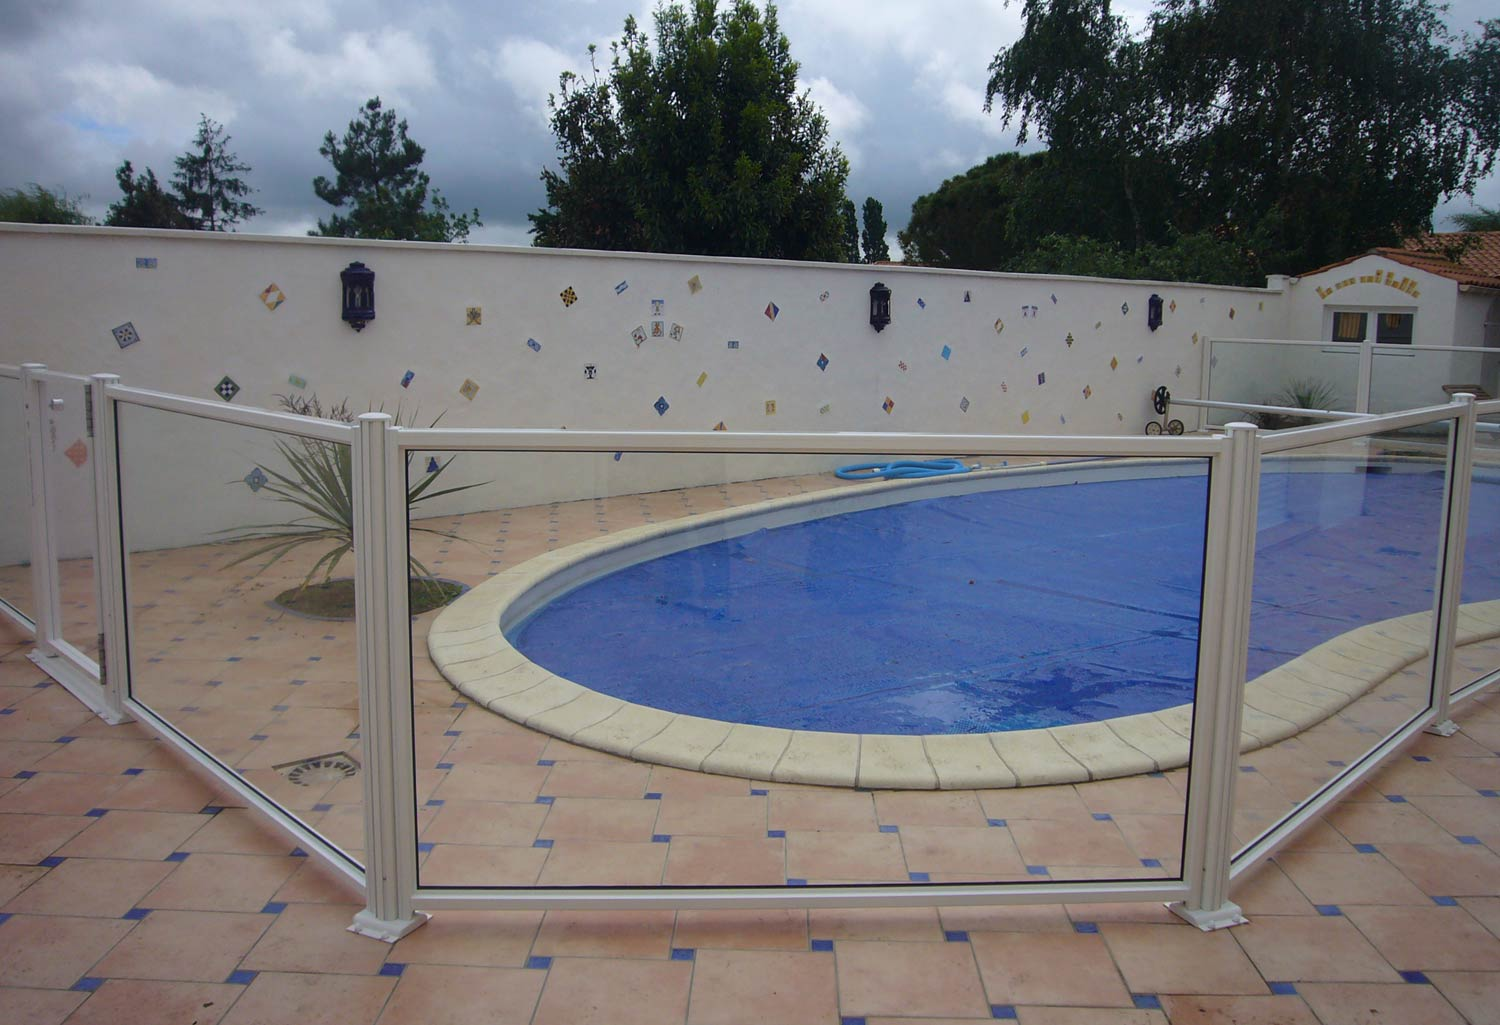 Protection piscine trendy intex bche de protection for Protection pour piscine